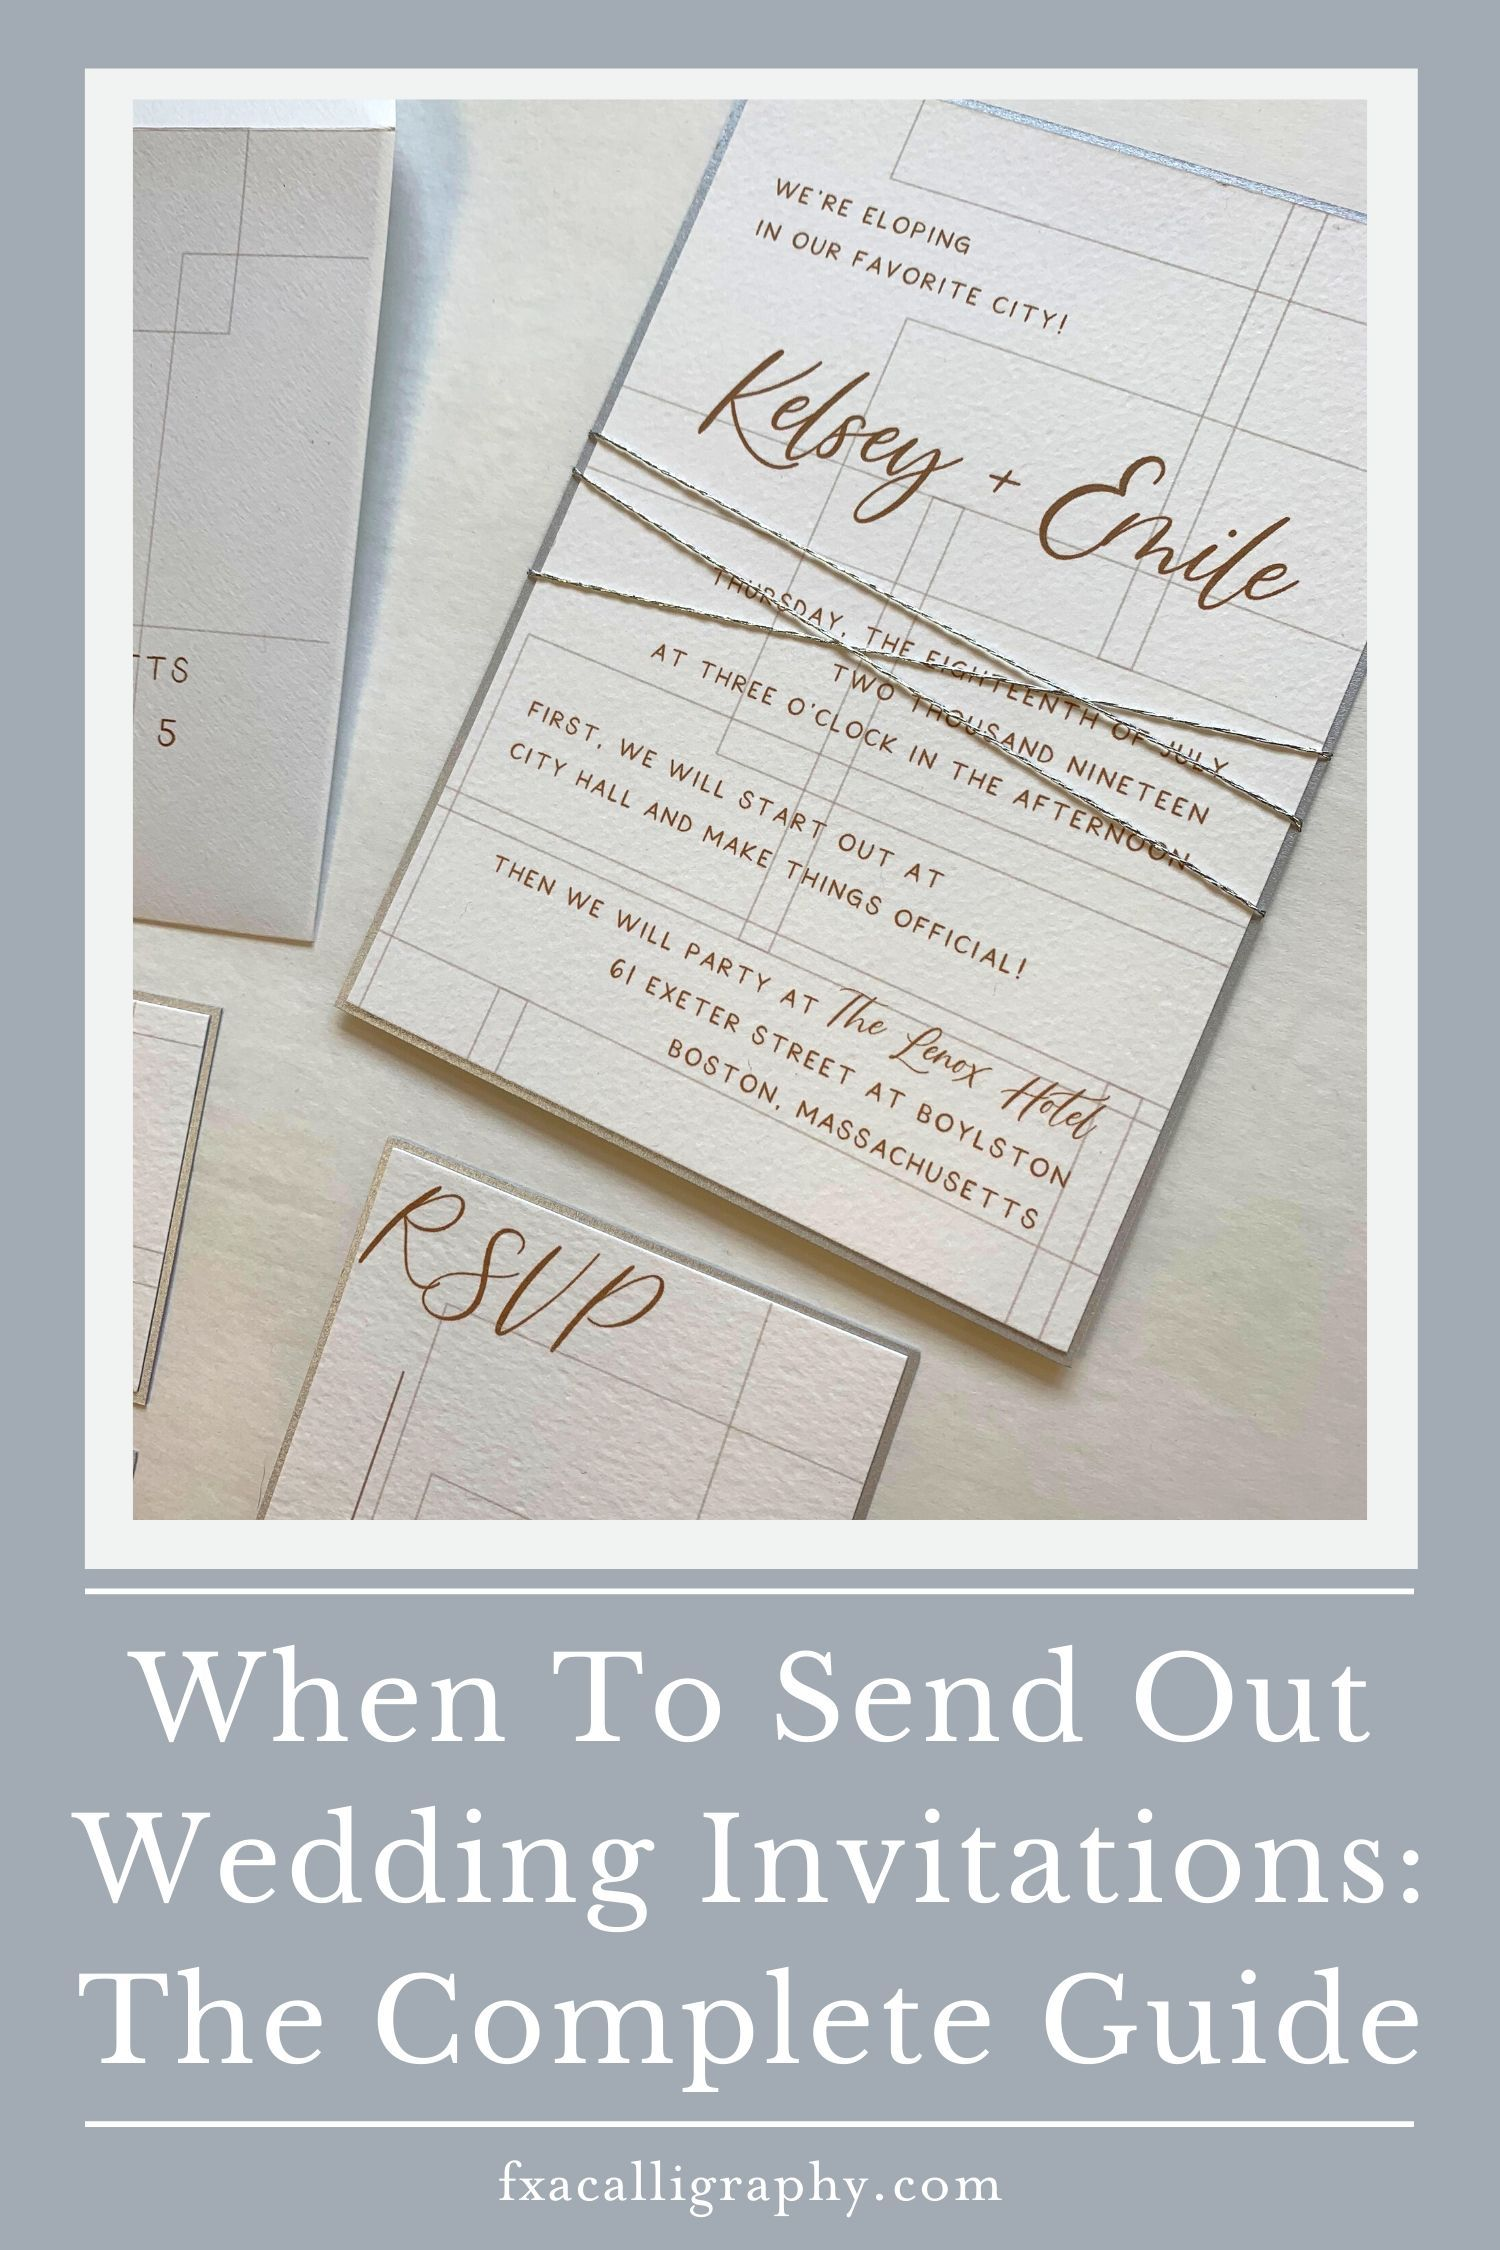 Wedding Invitation Deadlines To Keep In Mind Wedding Invitations Wedding Stationery Design Wedding Stationery